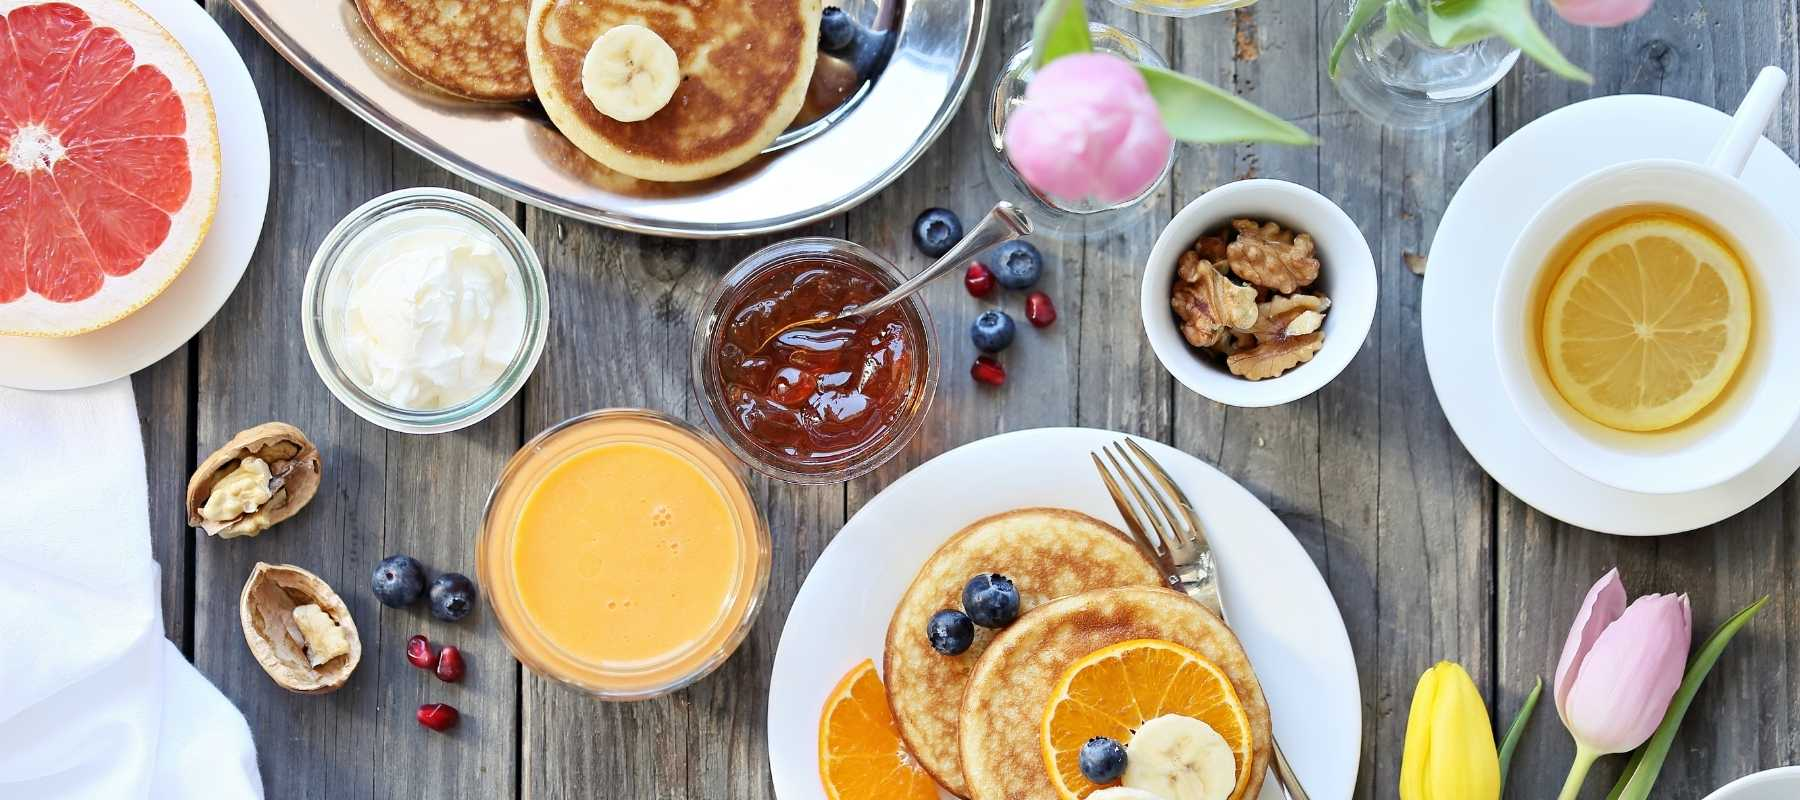 food choices - diy brunch wedding how to guide